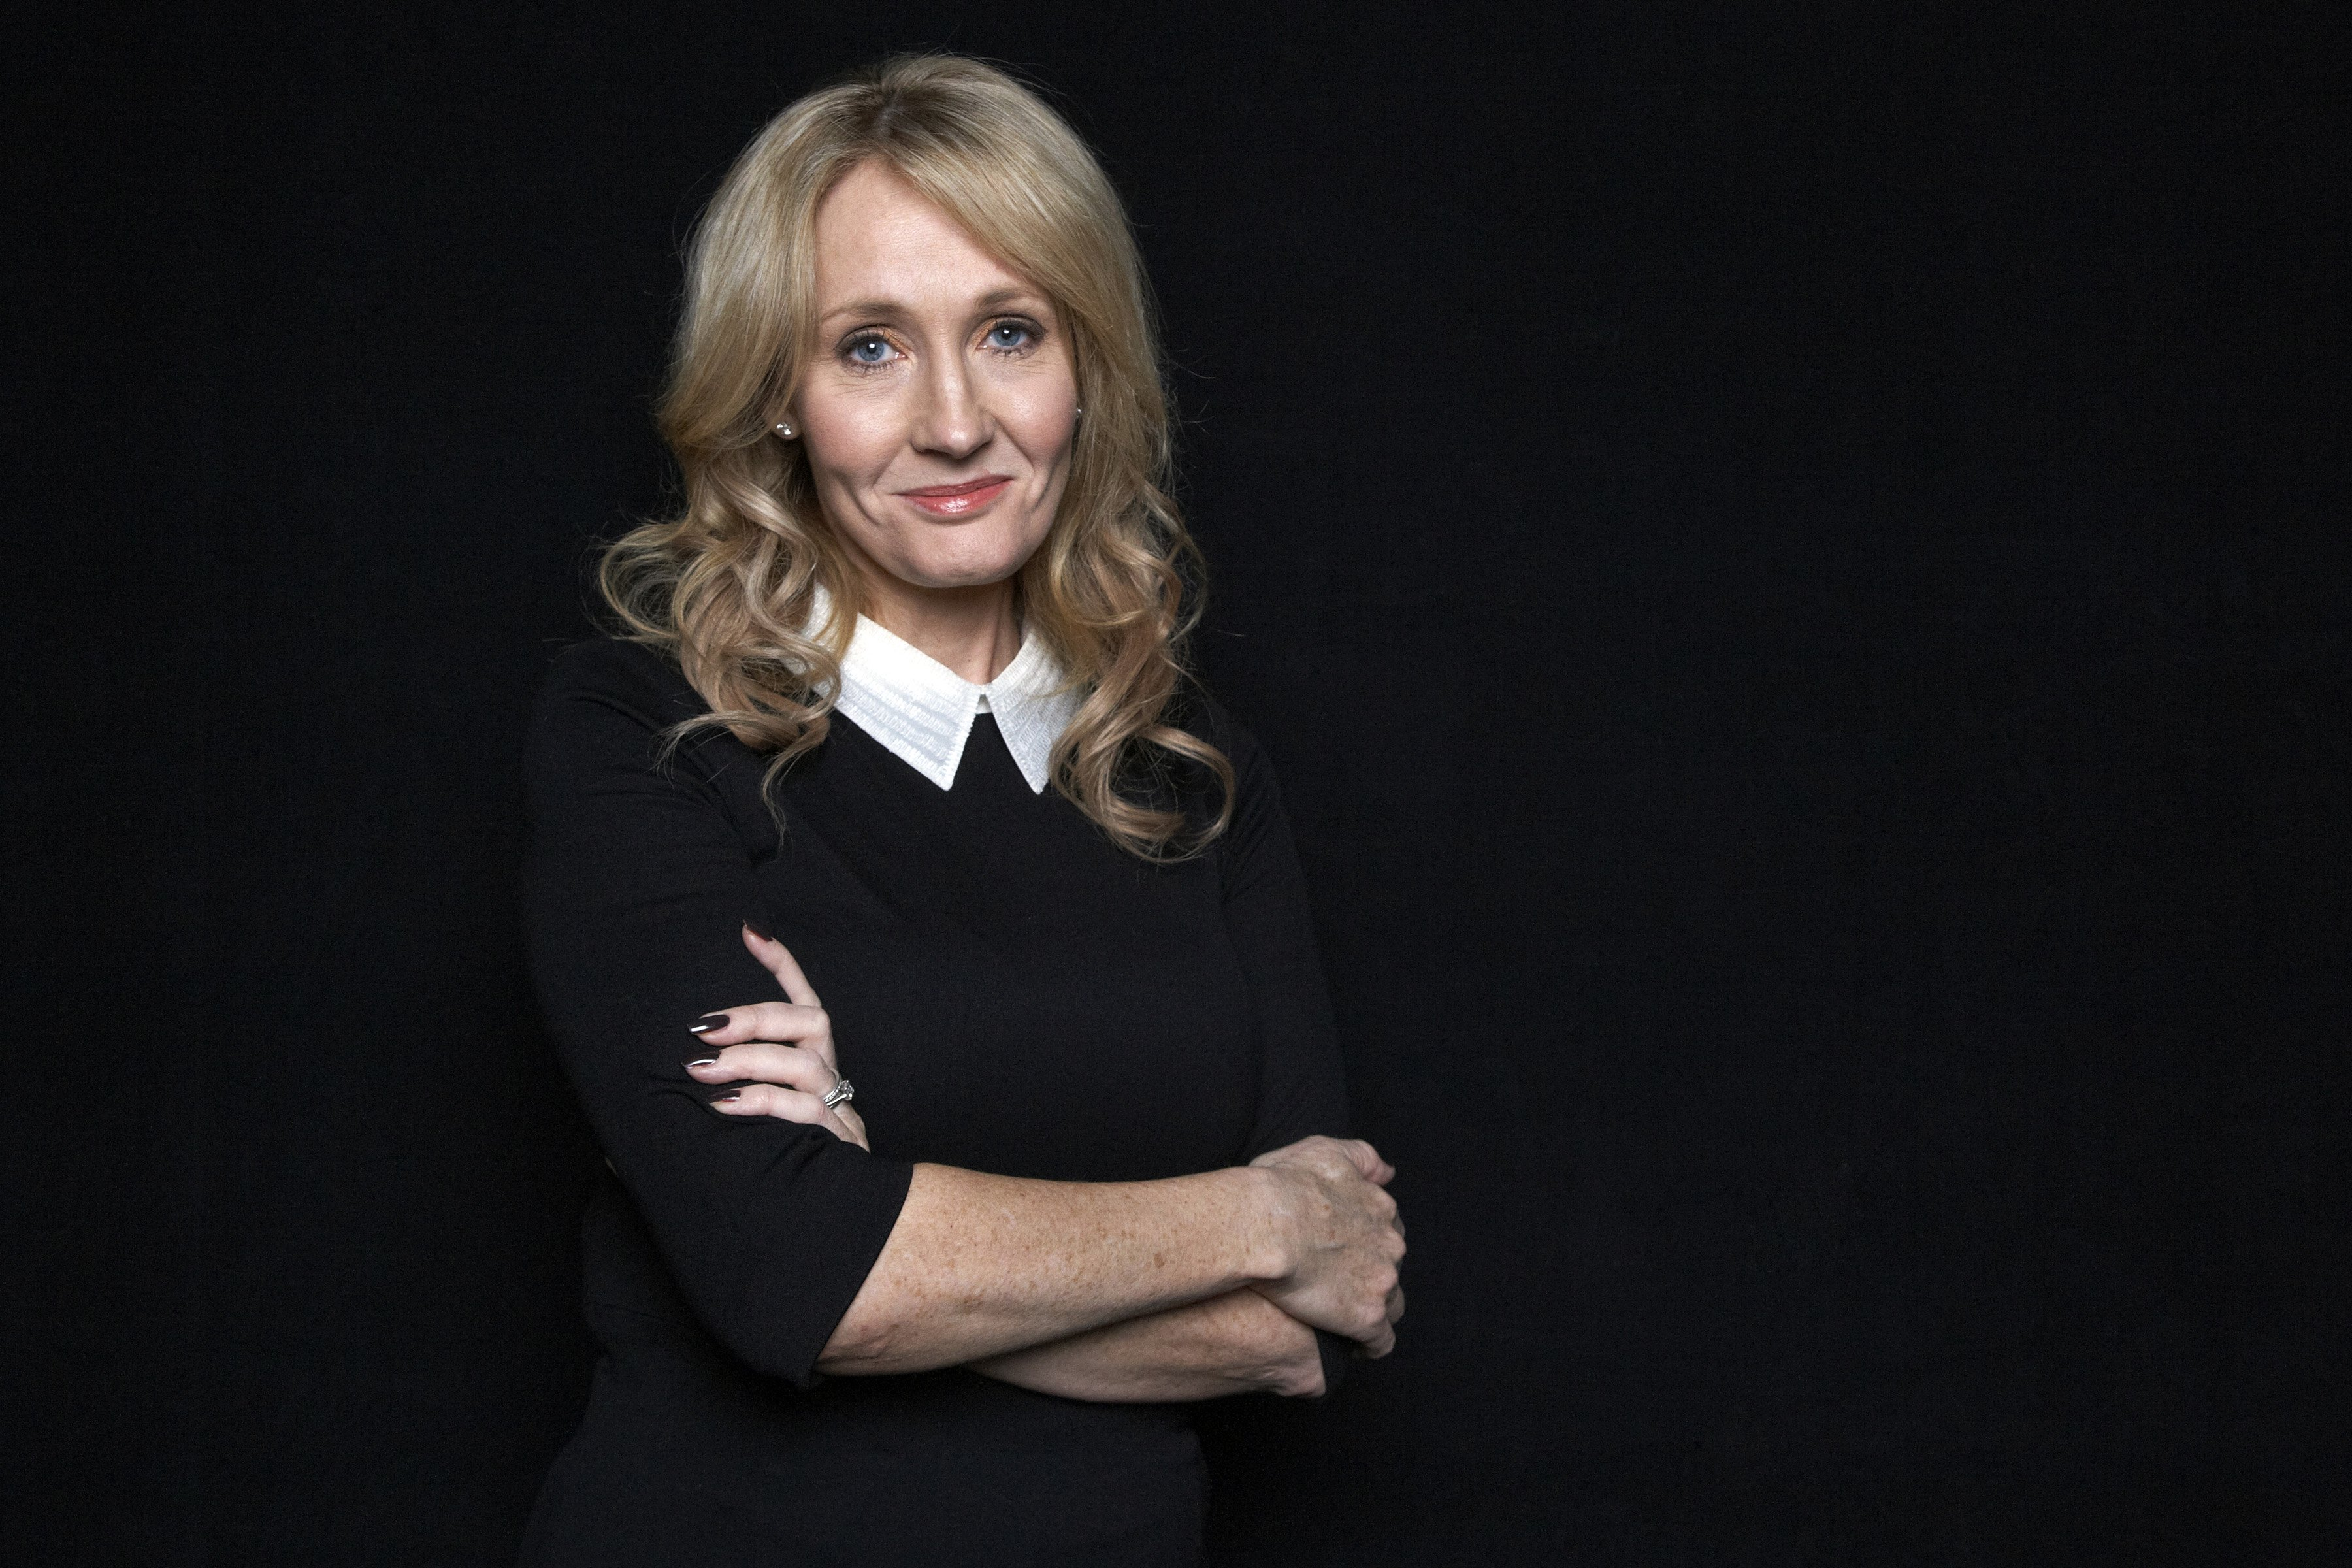 j k rowling in hot waters once again after transphobic remarks